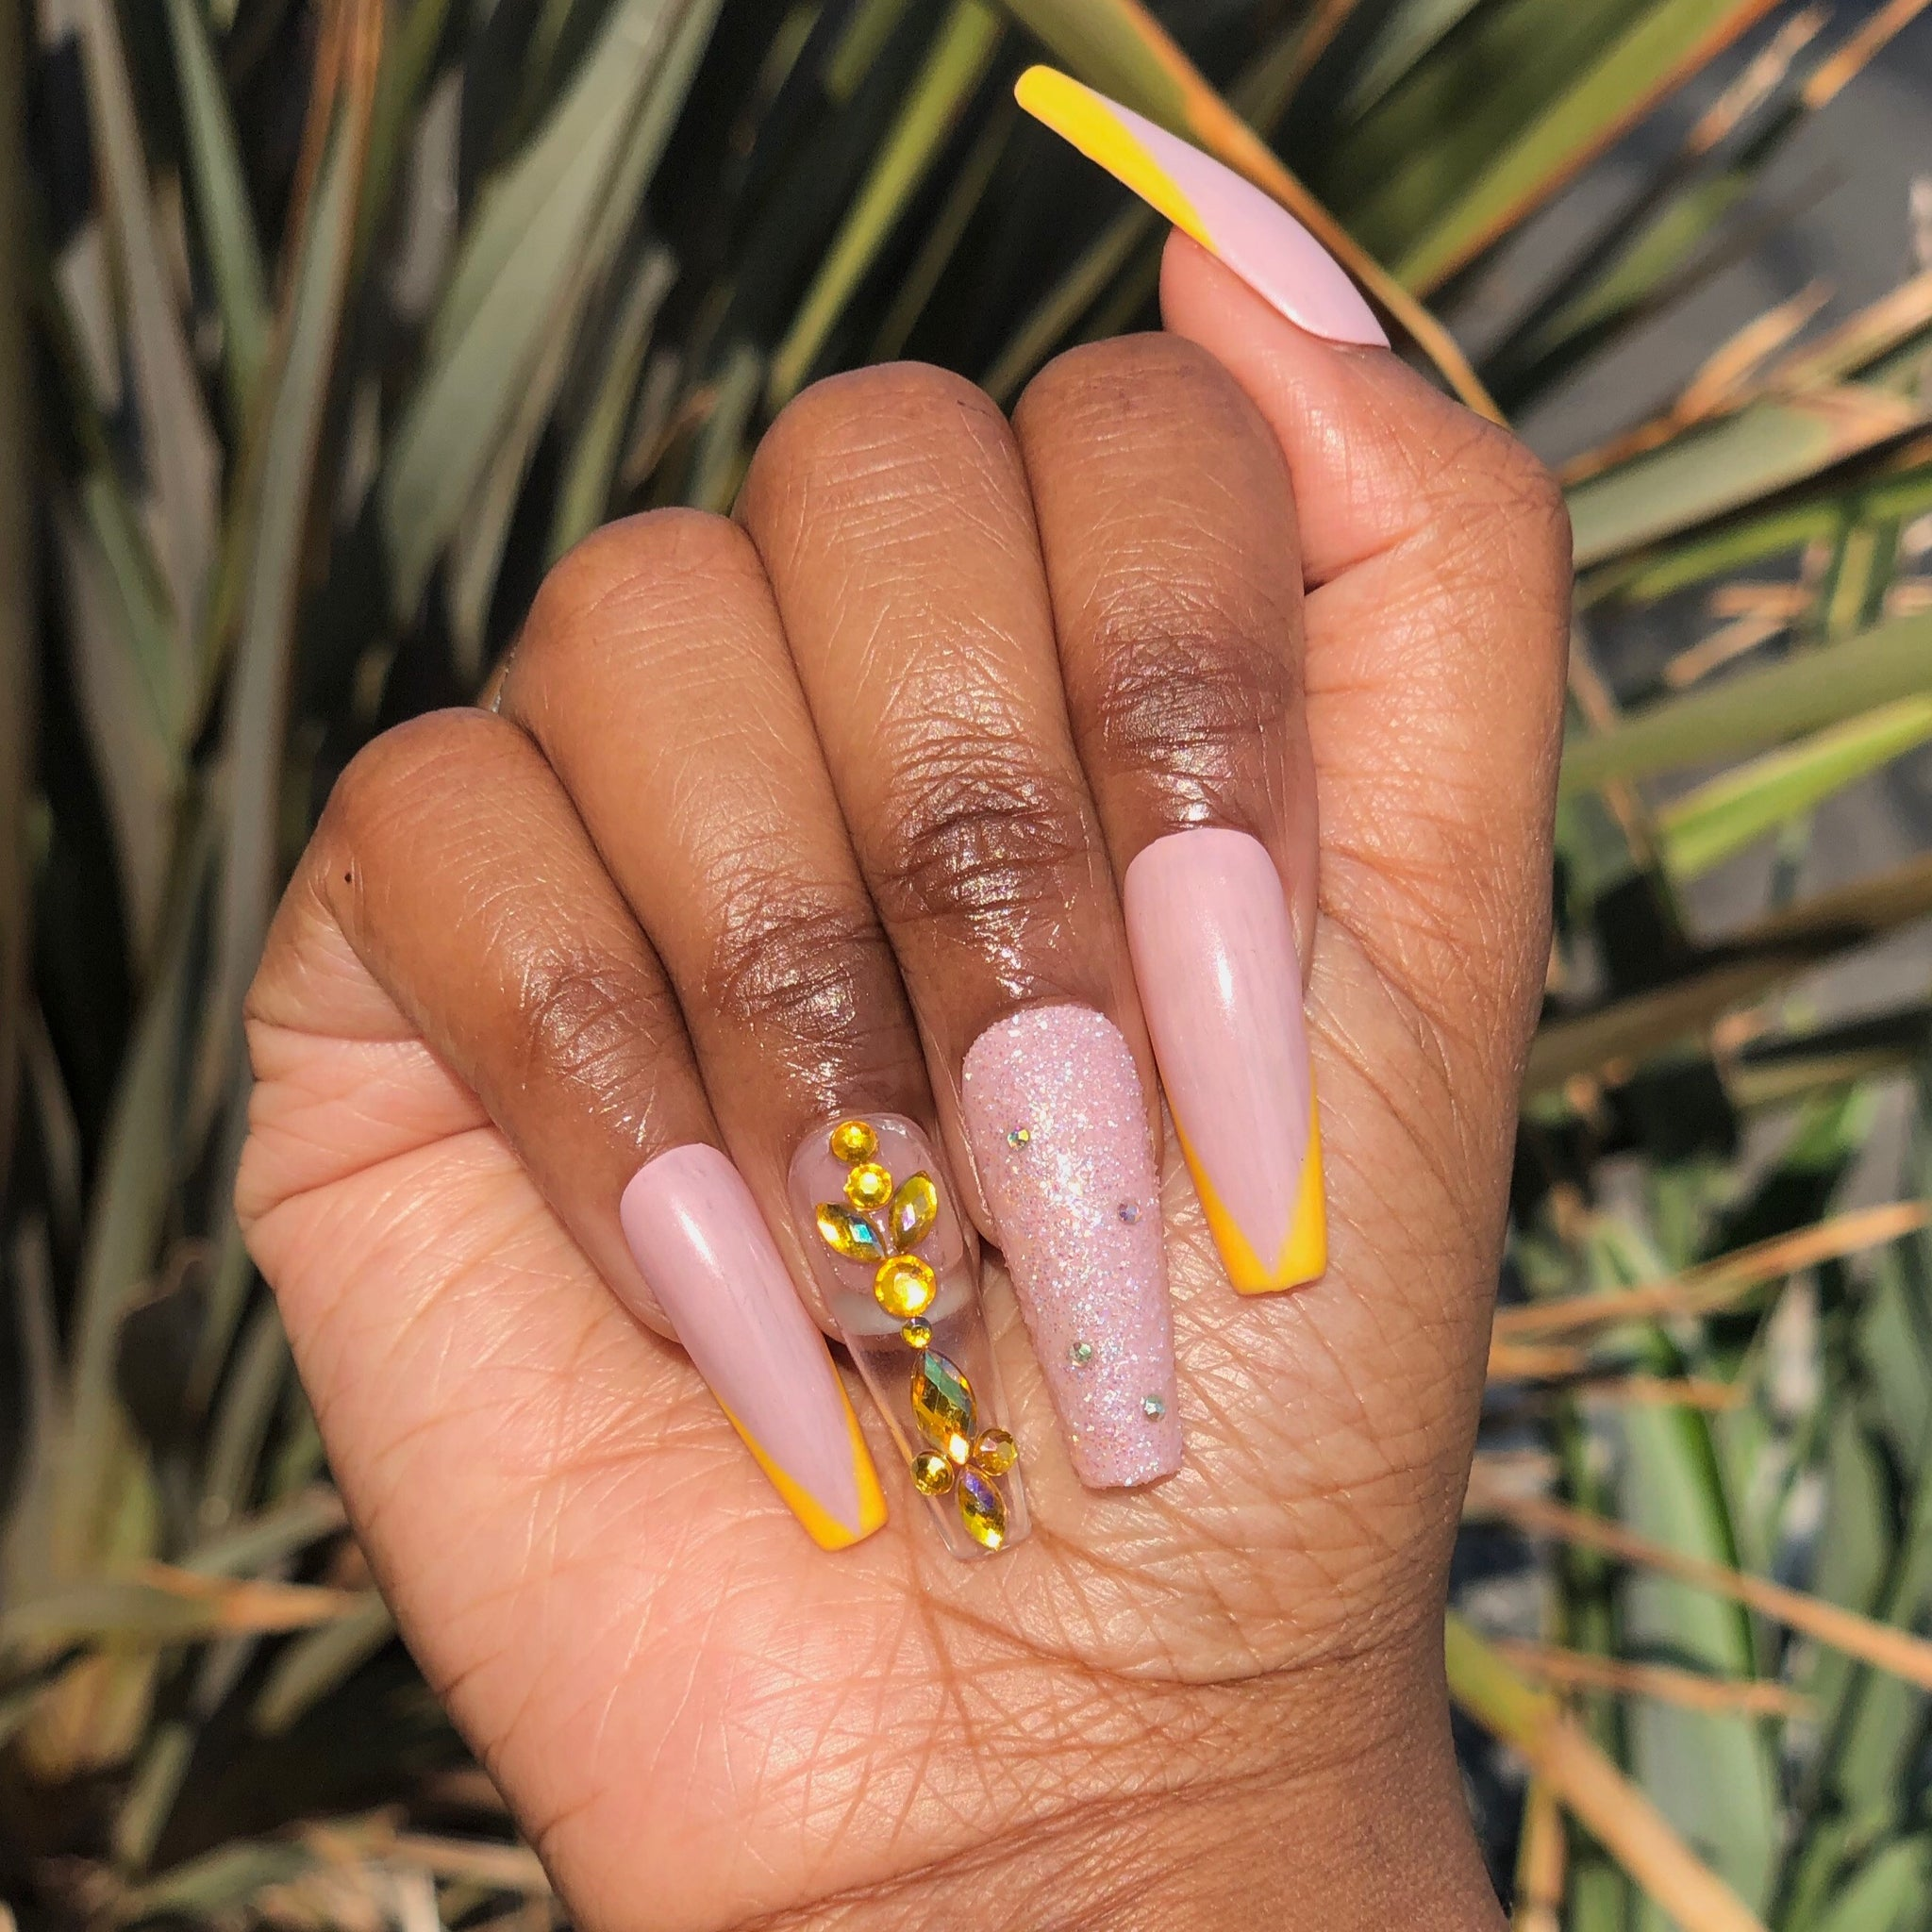 Manicure hand wearing tan press on nails with yellow French tip and multicolor yellow base  gems